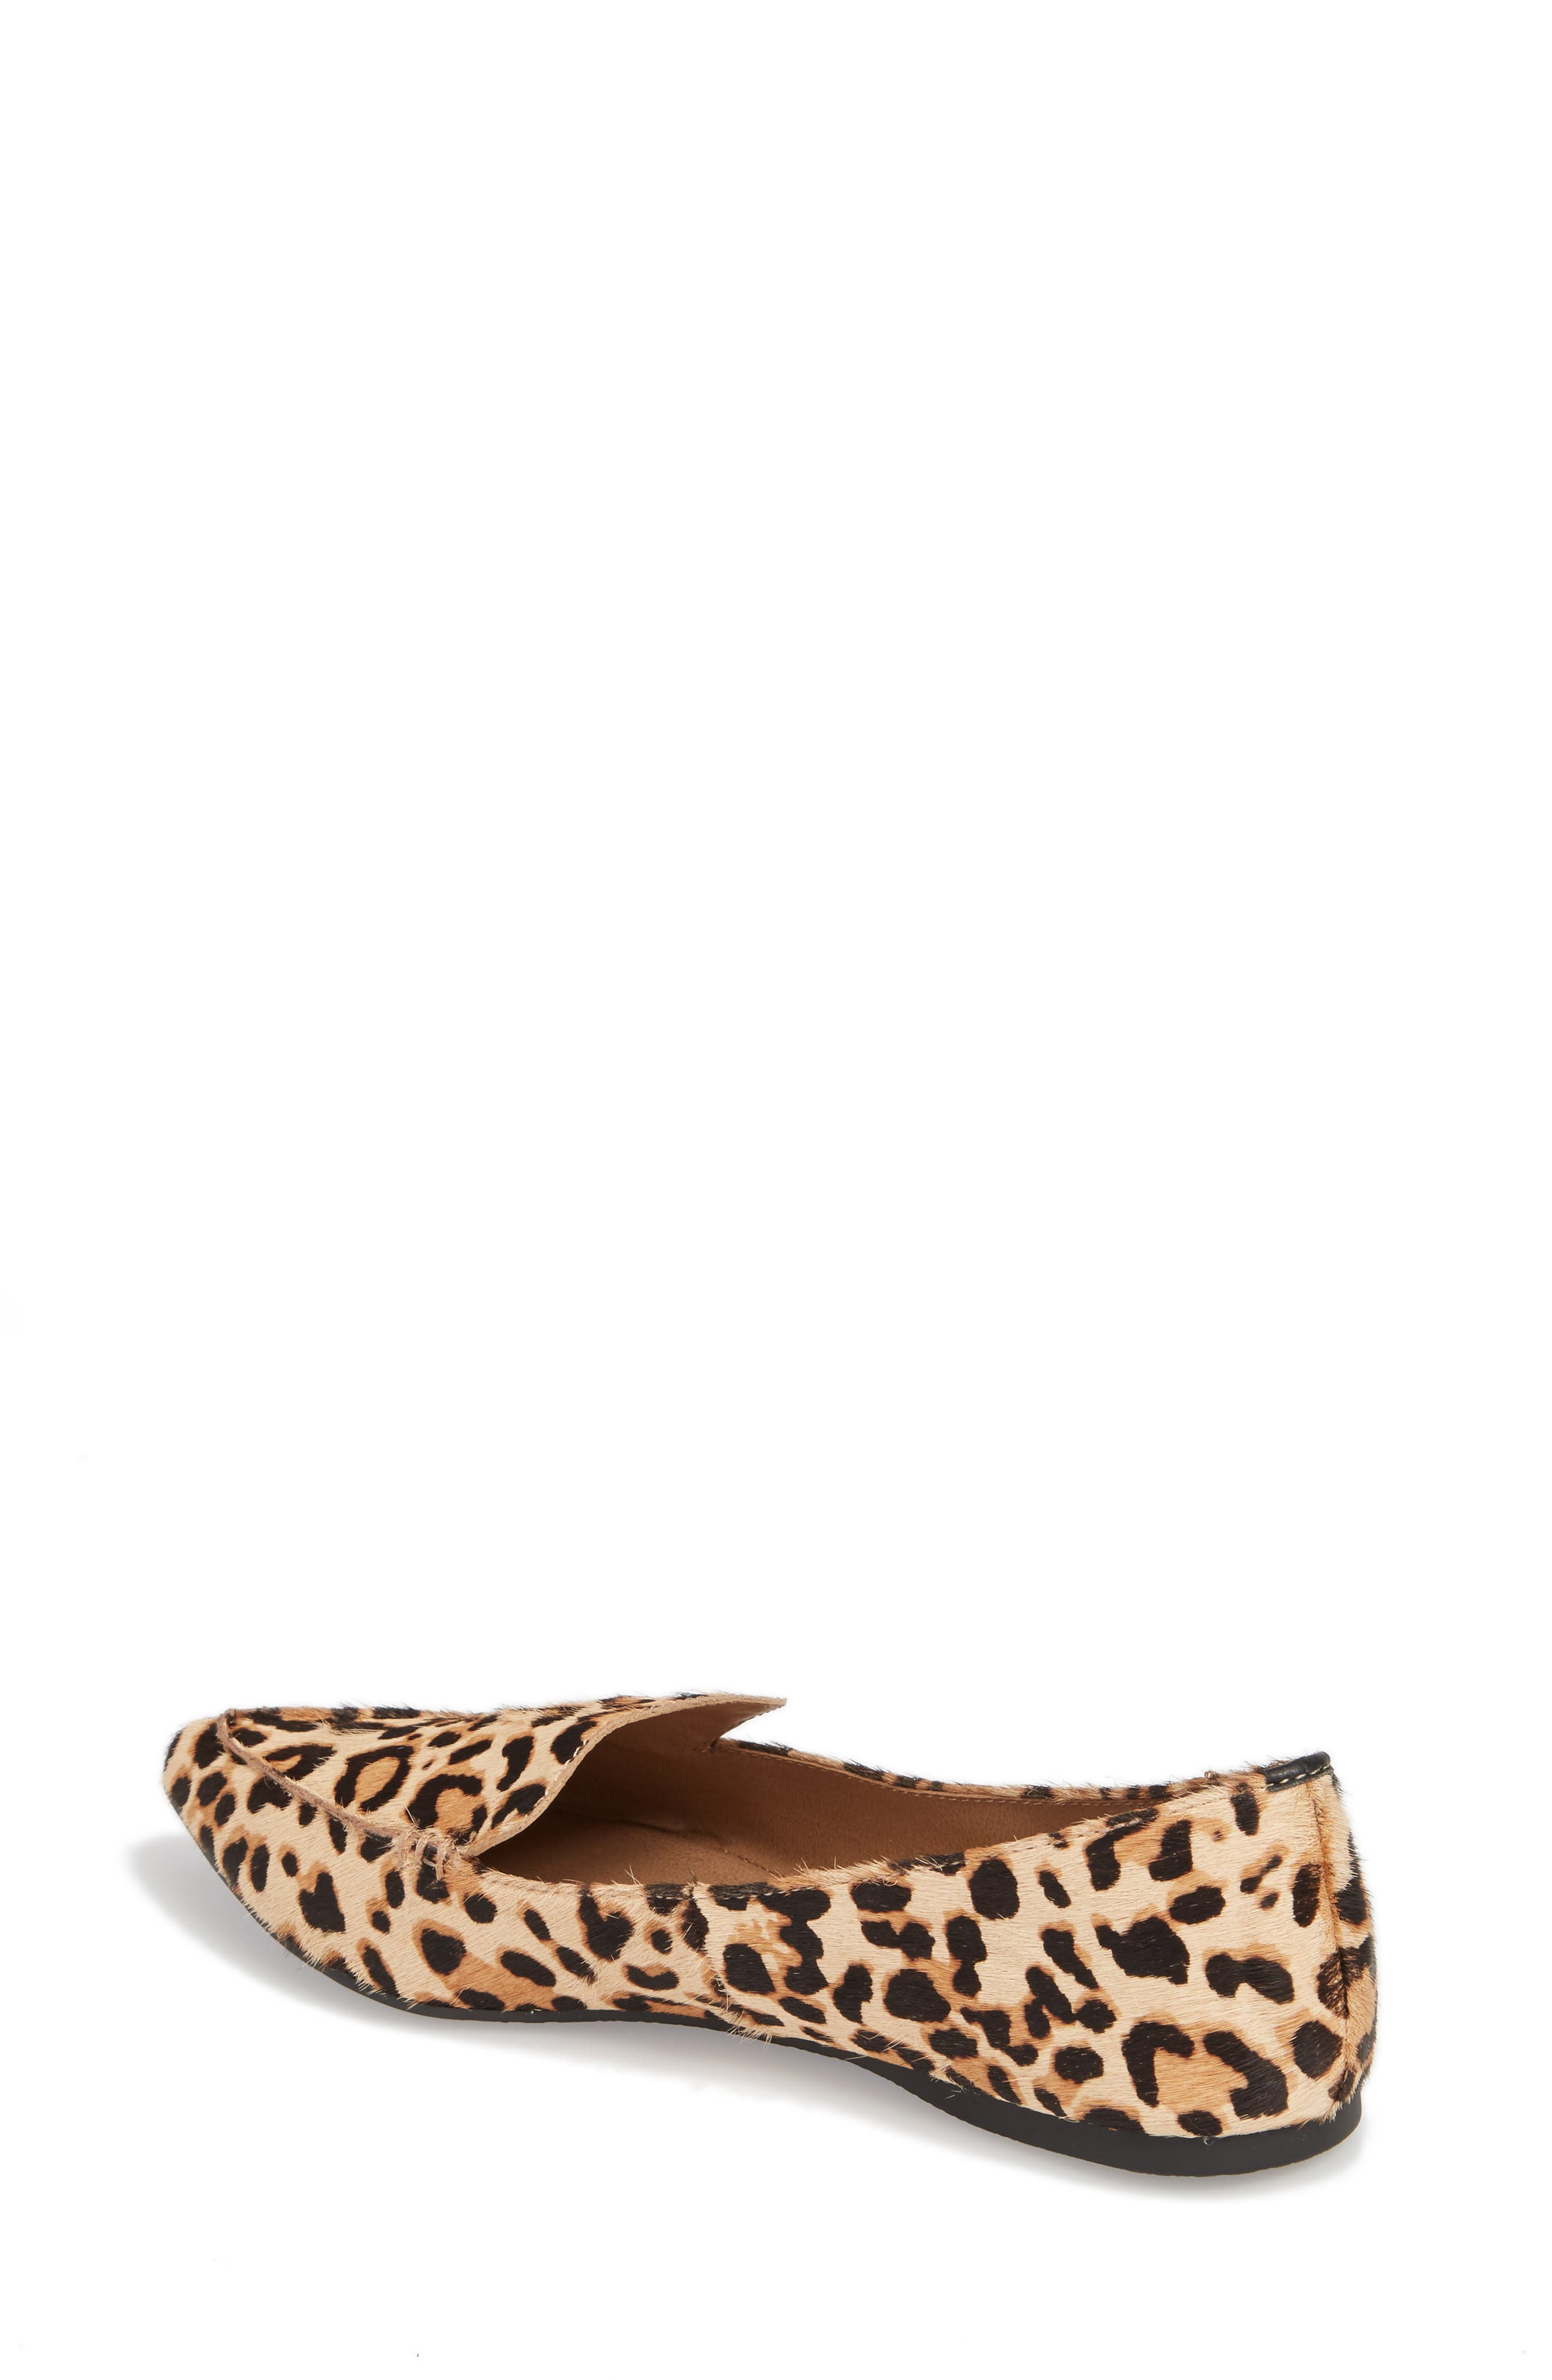 STEVE MADDEN, Feather-L Genuine Calf Hair Loafer Flat, Alternate thumbnail 2, color, LEOPARD